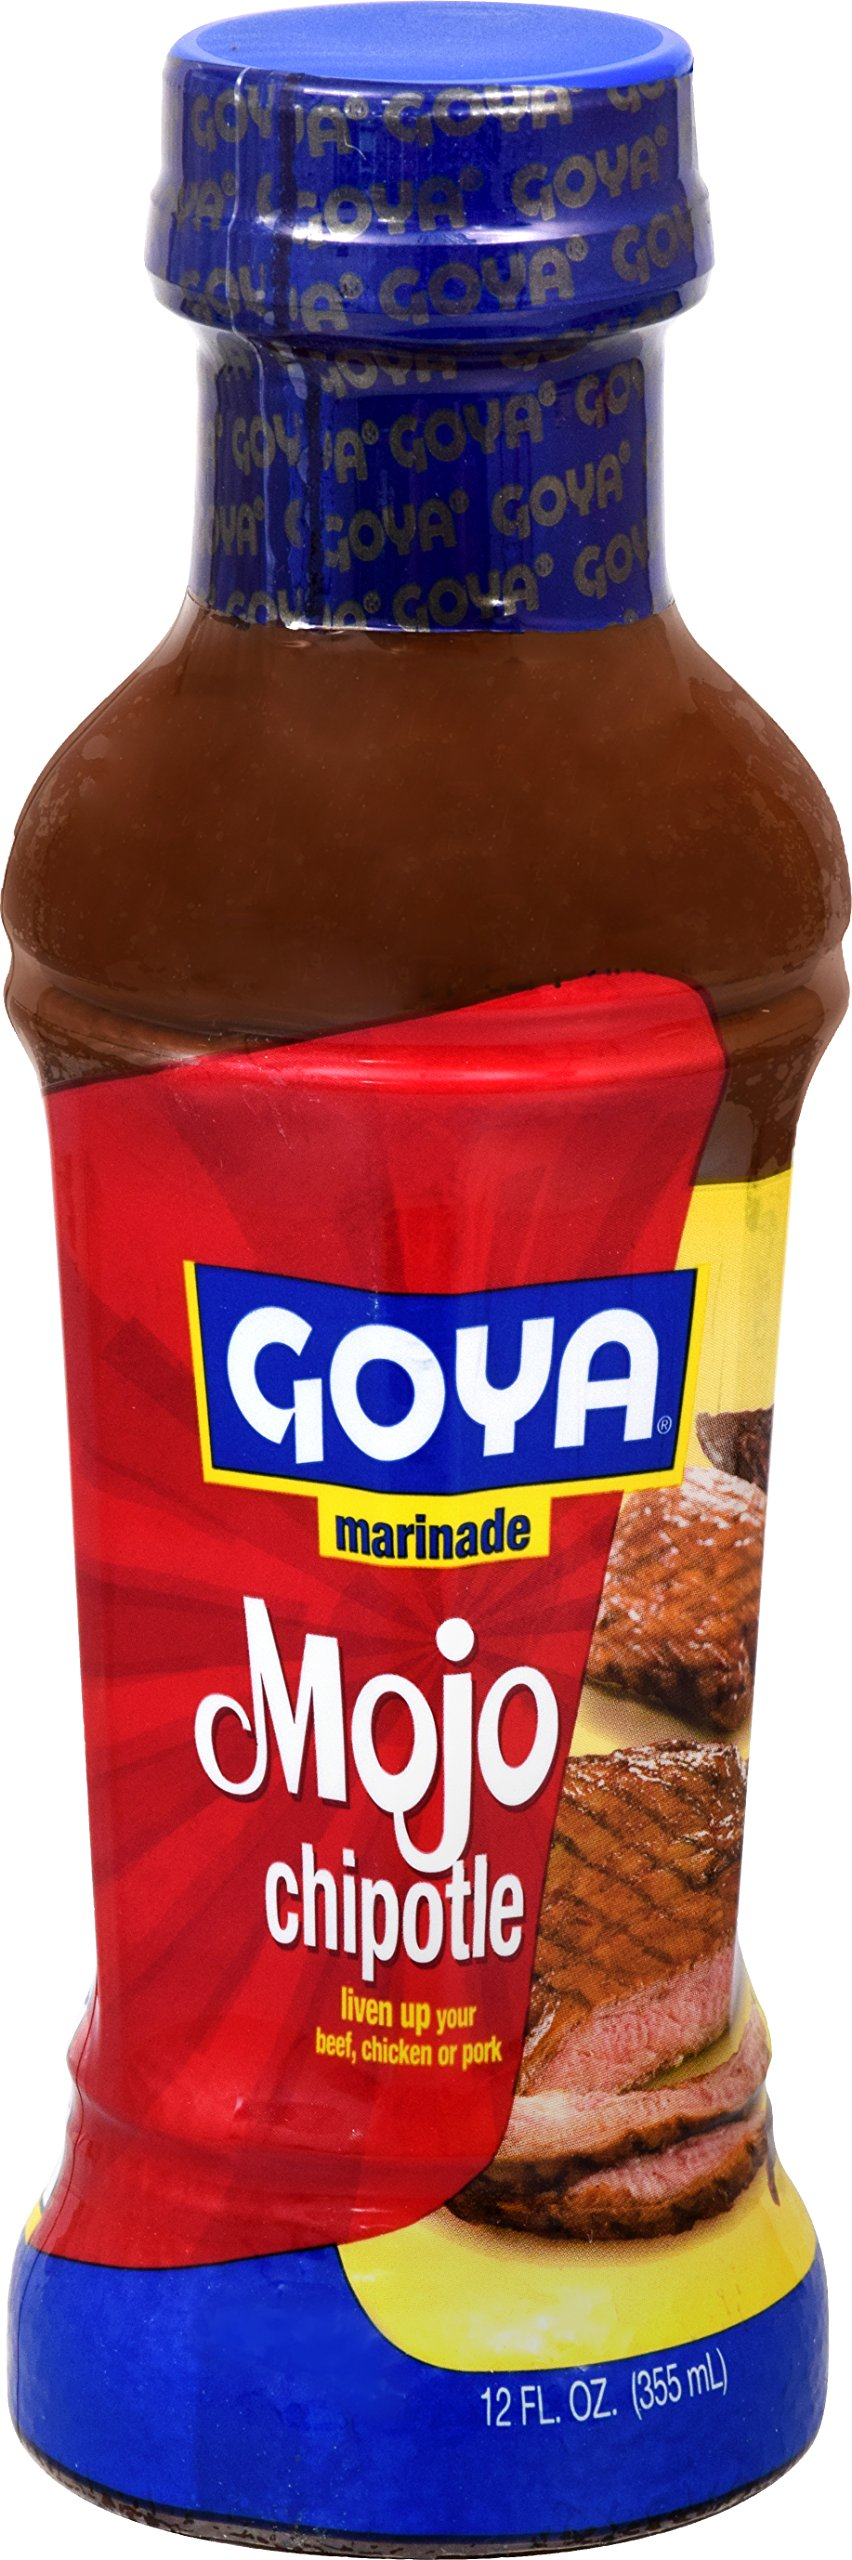 Goya Foods Chipotle Mojo Marinade, 12 Fluid Ounce (Pack of 12)